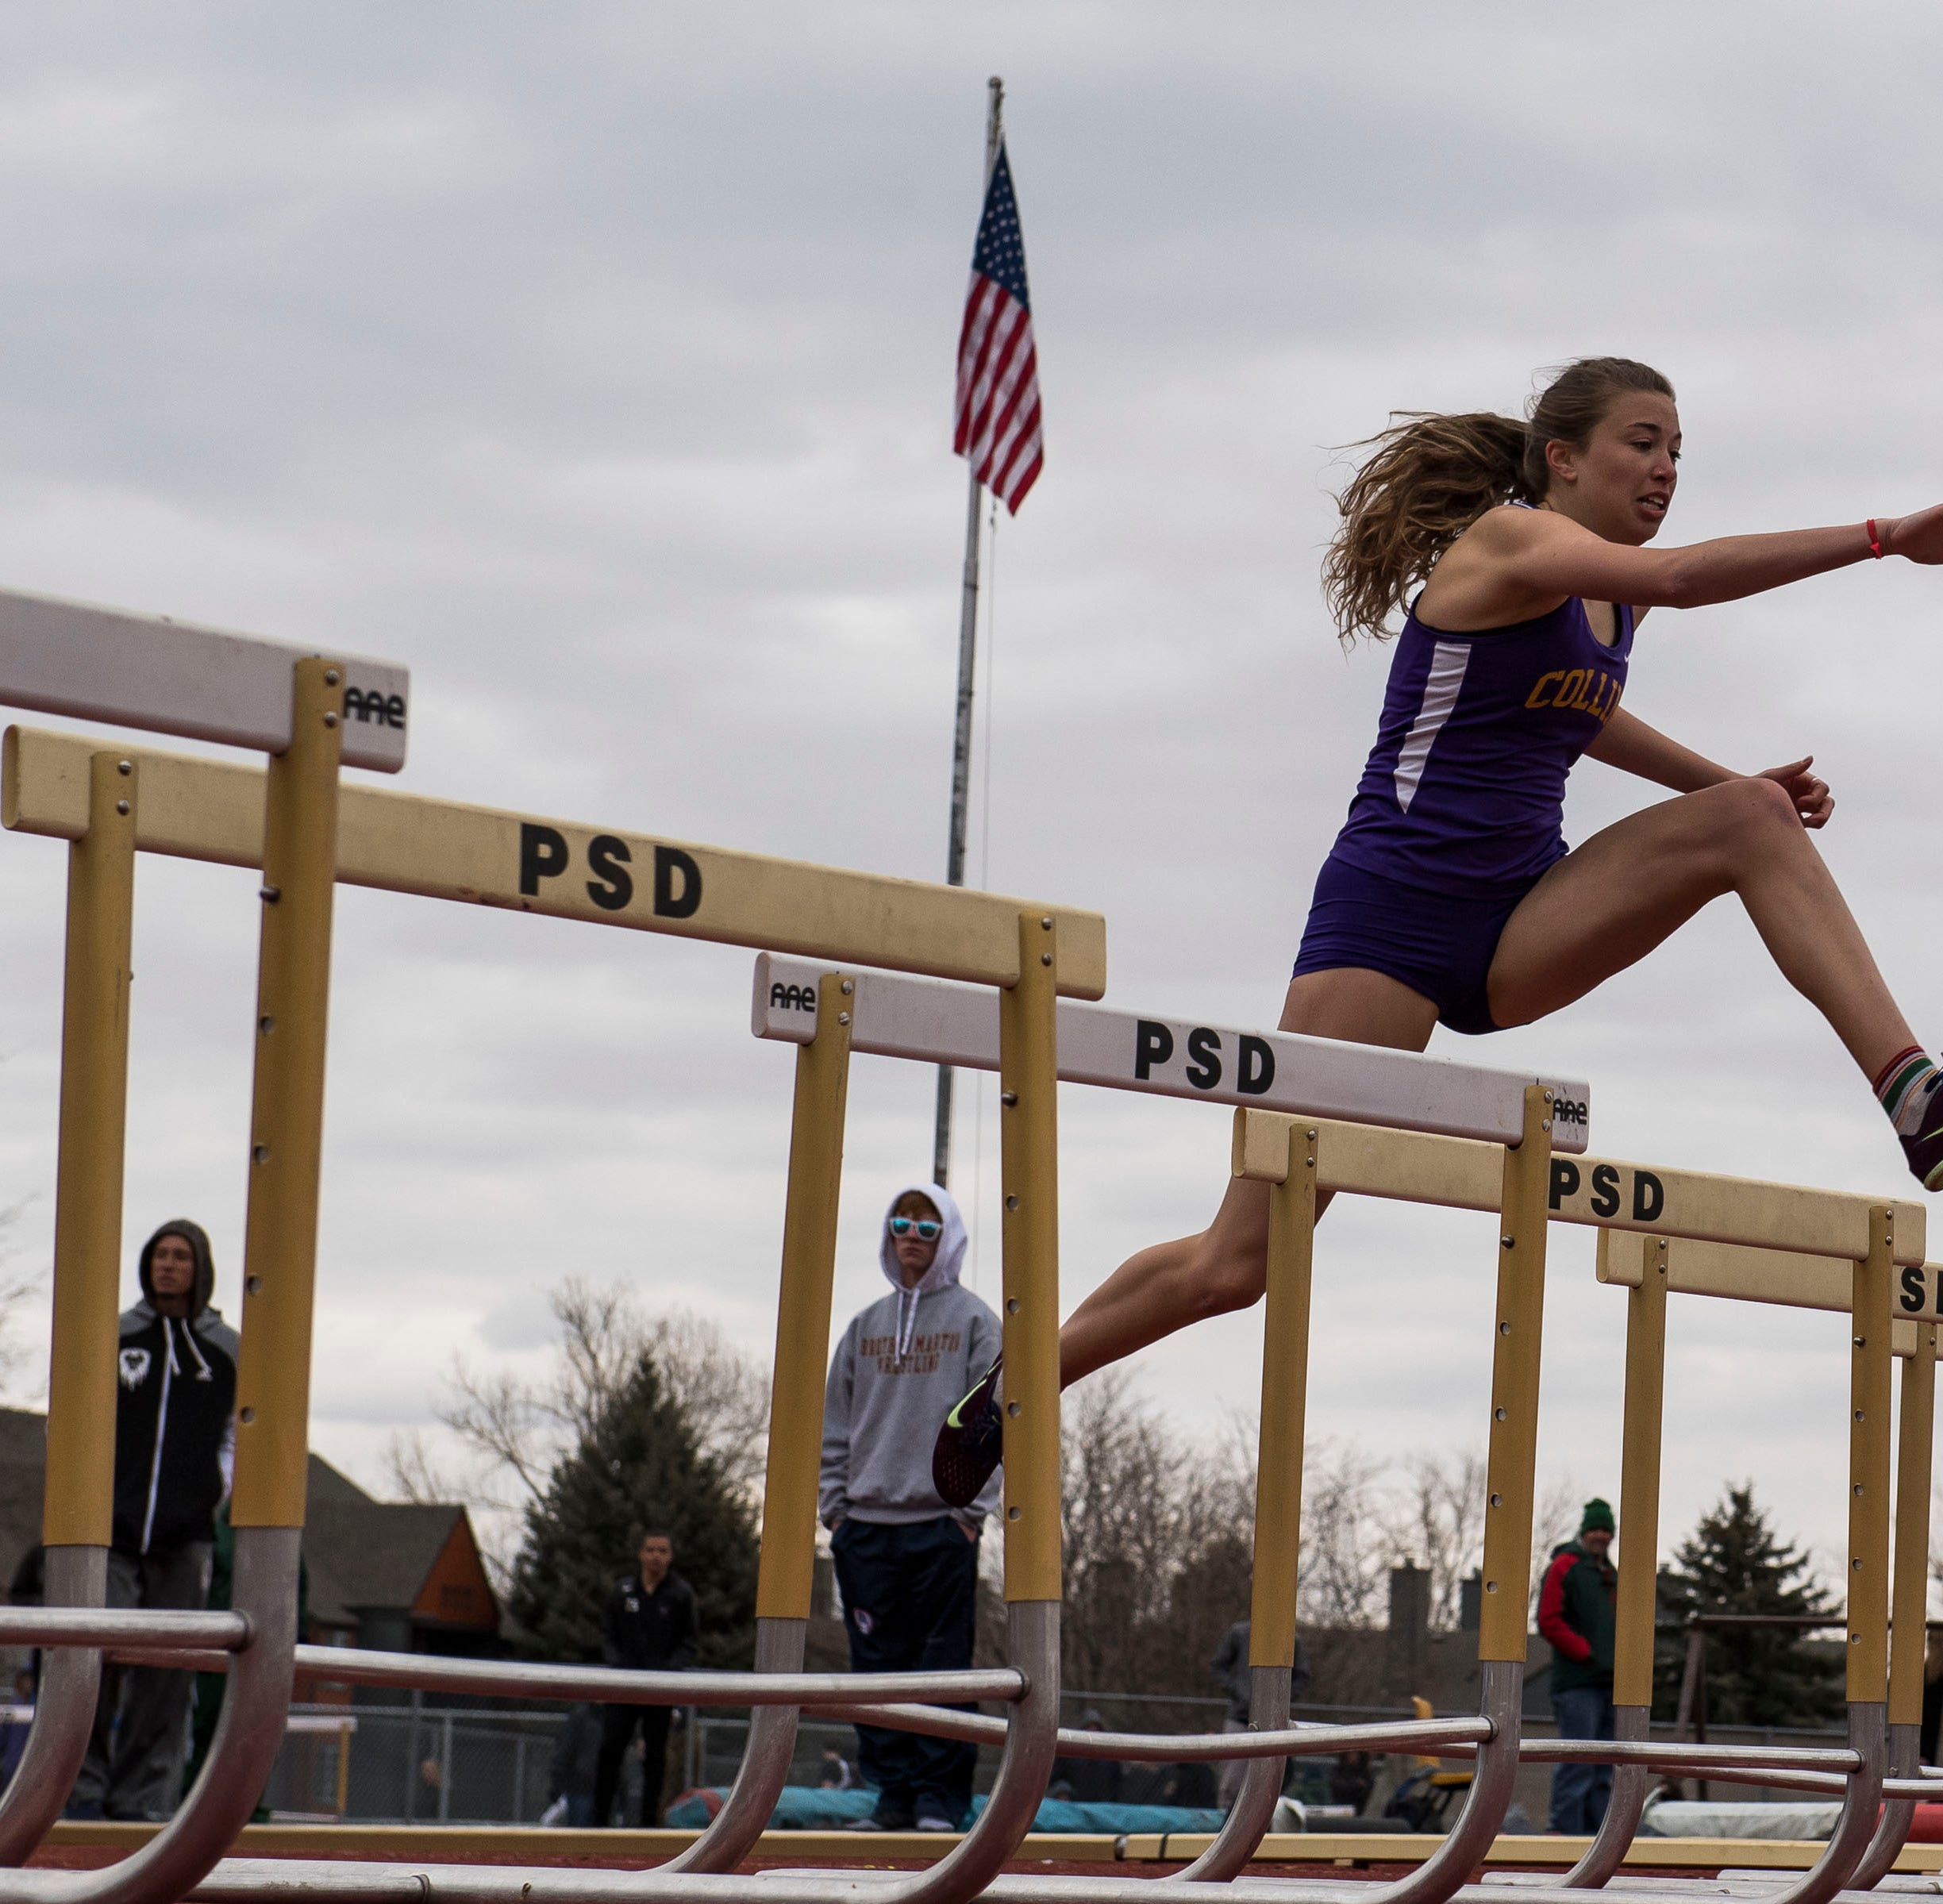 Fort Collins shows off its strength in relay races at Altitude Invitational track meet